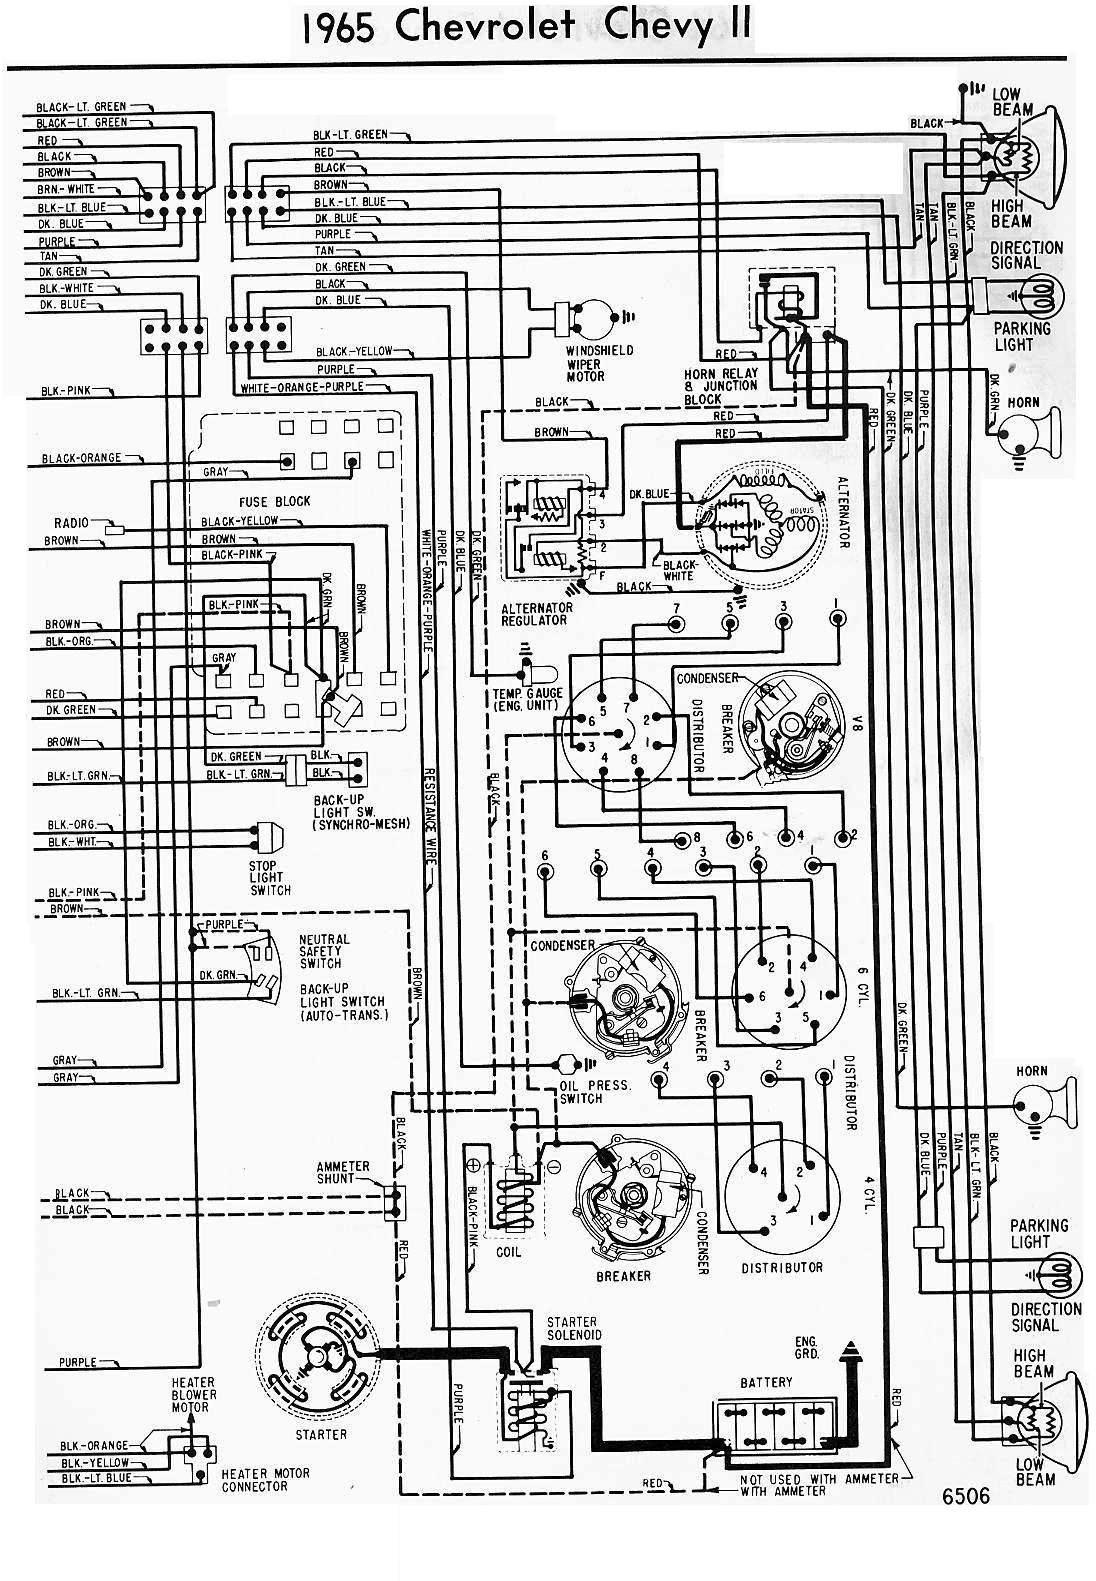 High Low Motor Wiring Electrical Diagram Voltage 3 Phase On And 1965 Chevrolet Chevy Ii All About